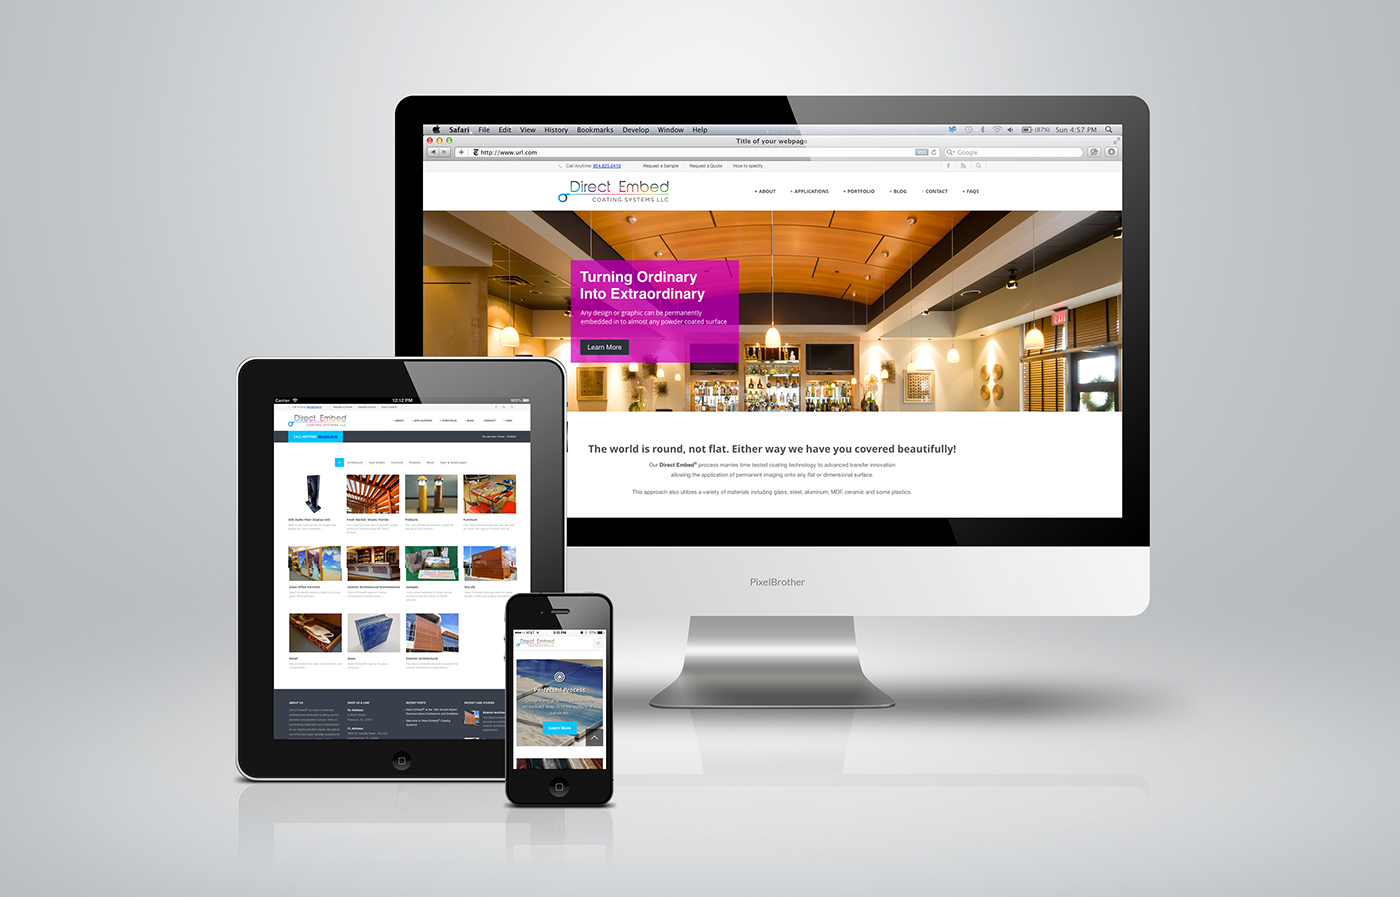 Responsive website design and development for Direct Embed